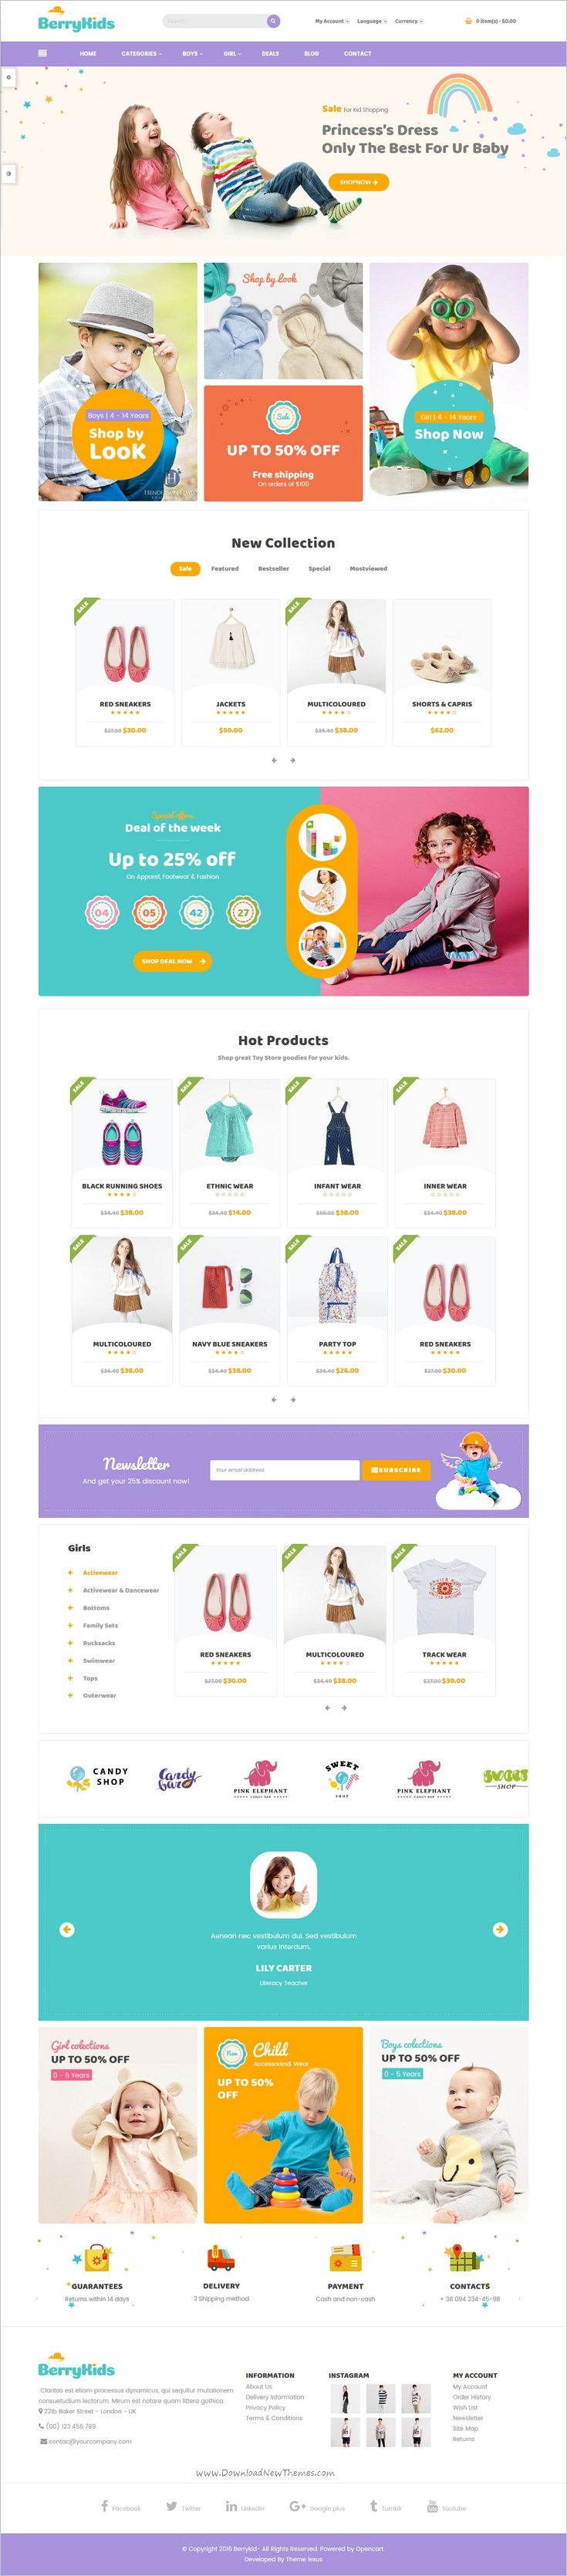 Lexus Berrykid is a creative and powerful 4in1 responsive #Opencart theme for #kids, #toys online #shop eCommerce website with ultimate core features download now➩ https://themeforest.net/item/lexus-berrykid-kid-shop-opencart-theme/19087005?ref=Datasata